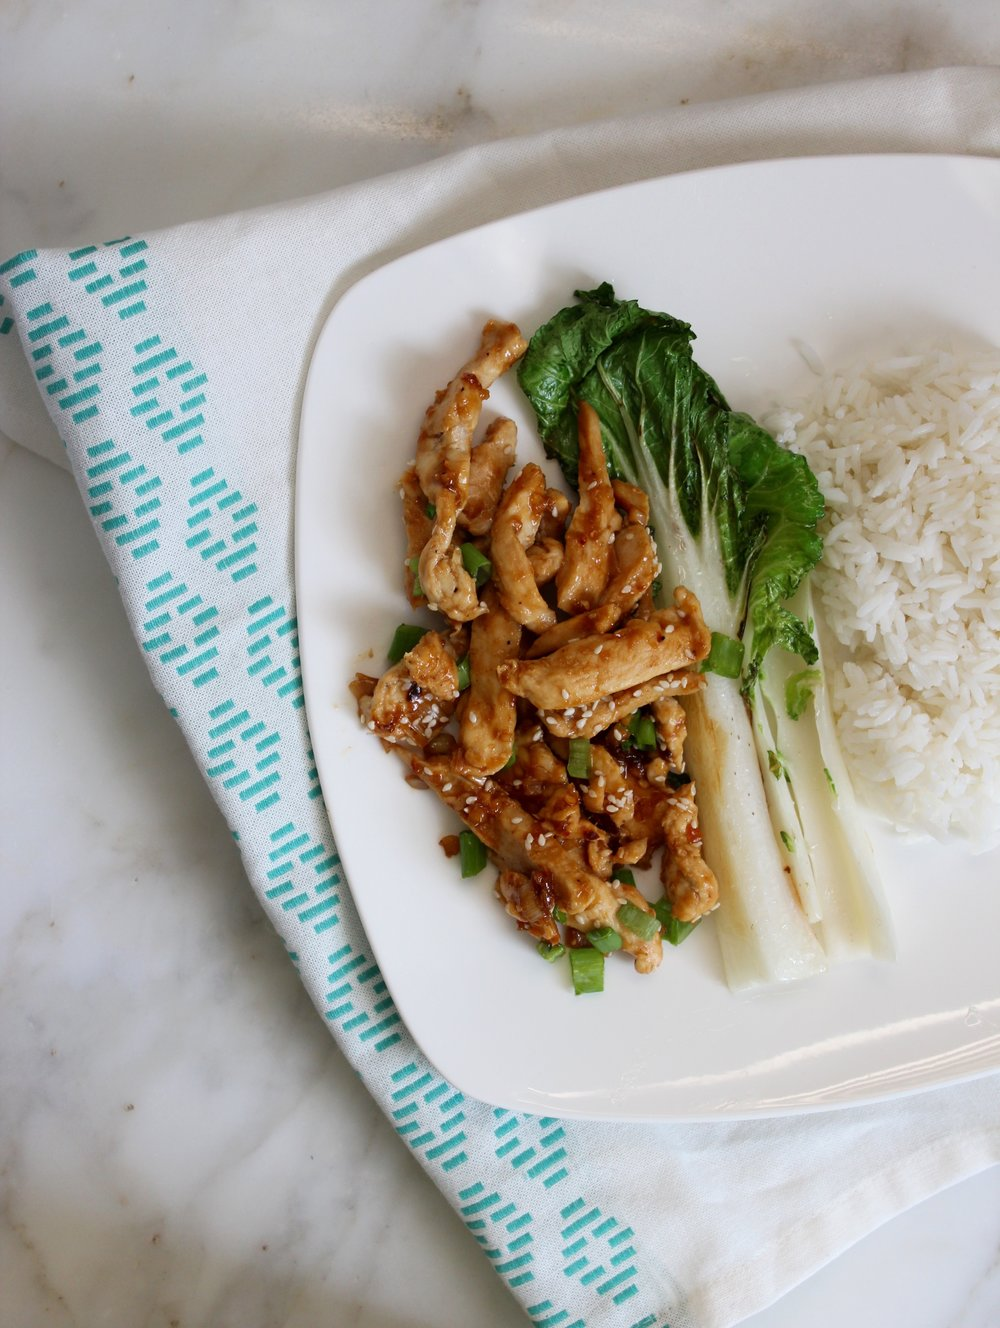 I pair this chicken with some white rice and sautéed bok choy! If you are doing a whole30 just look at my chicken fried rice recipe minus the chicken :)